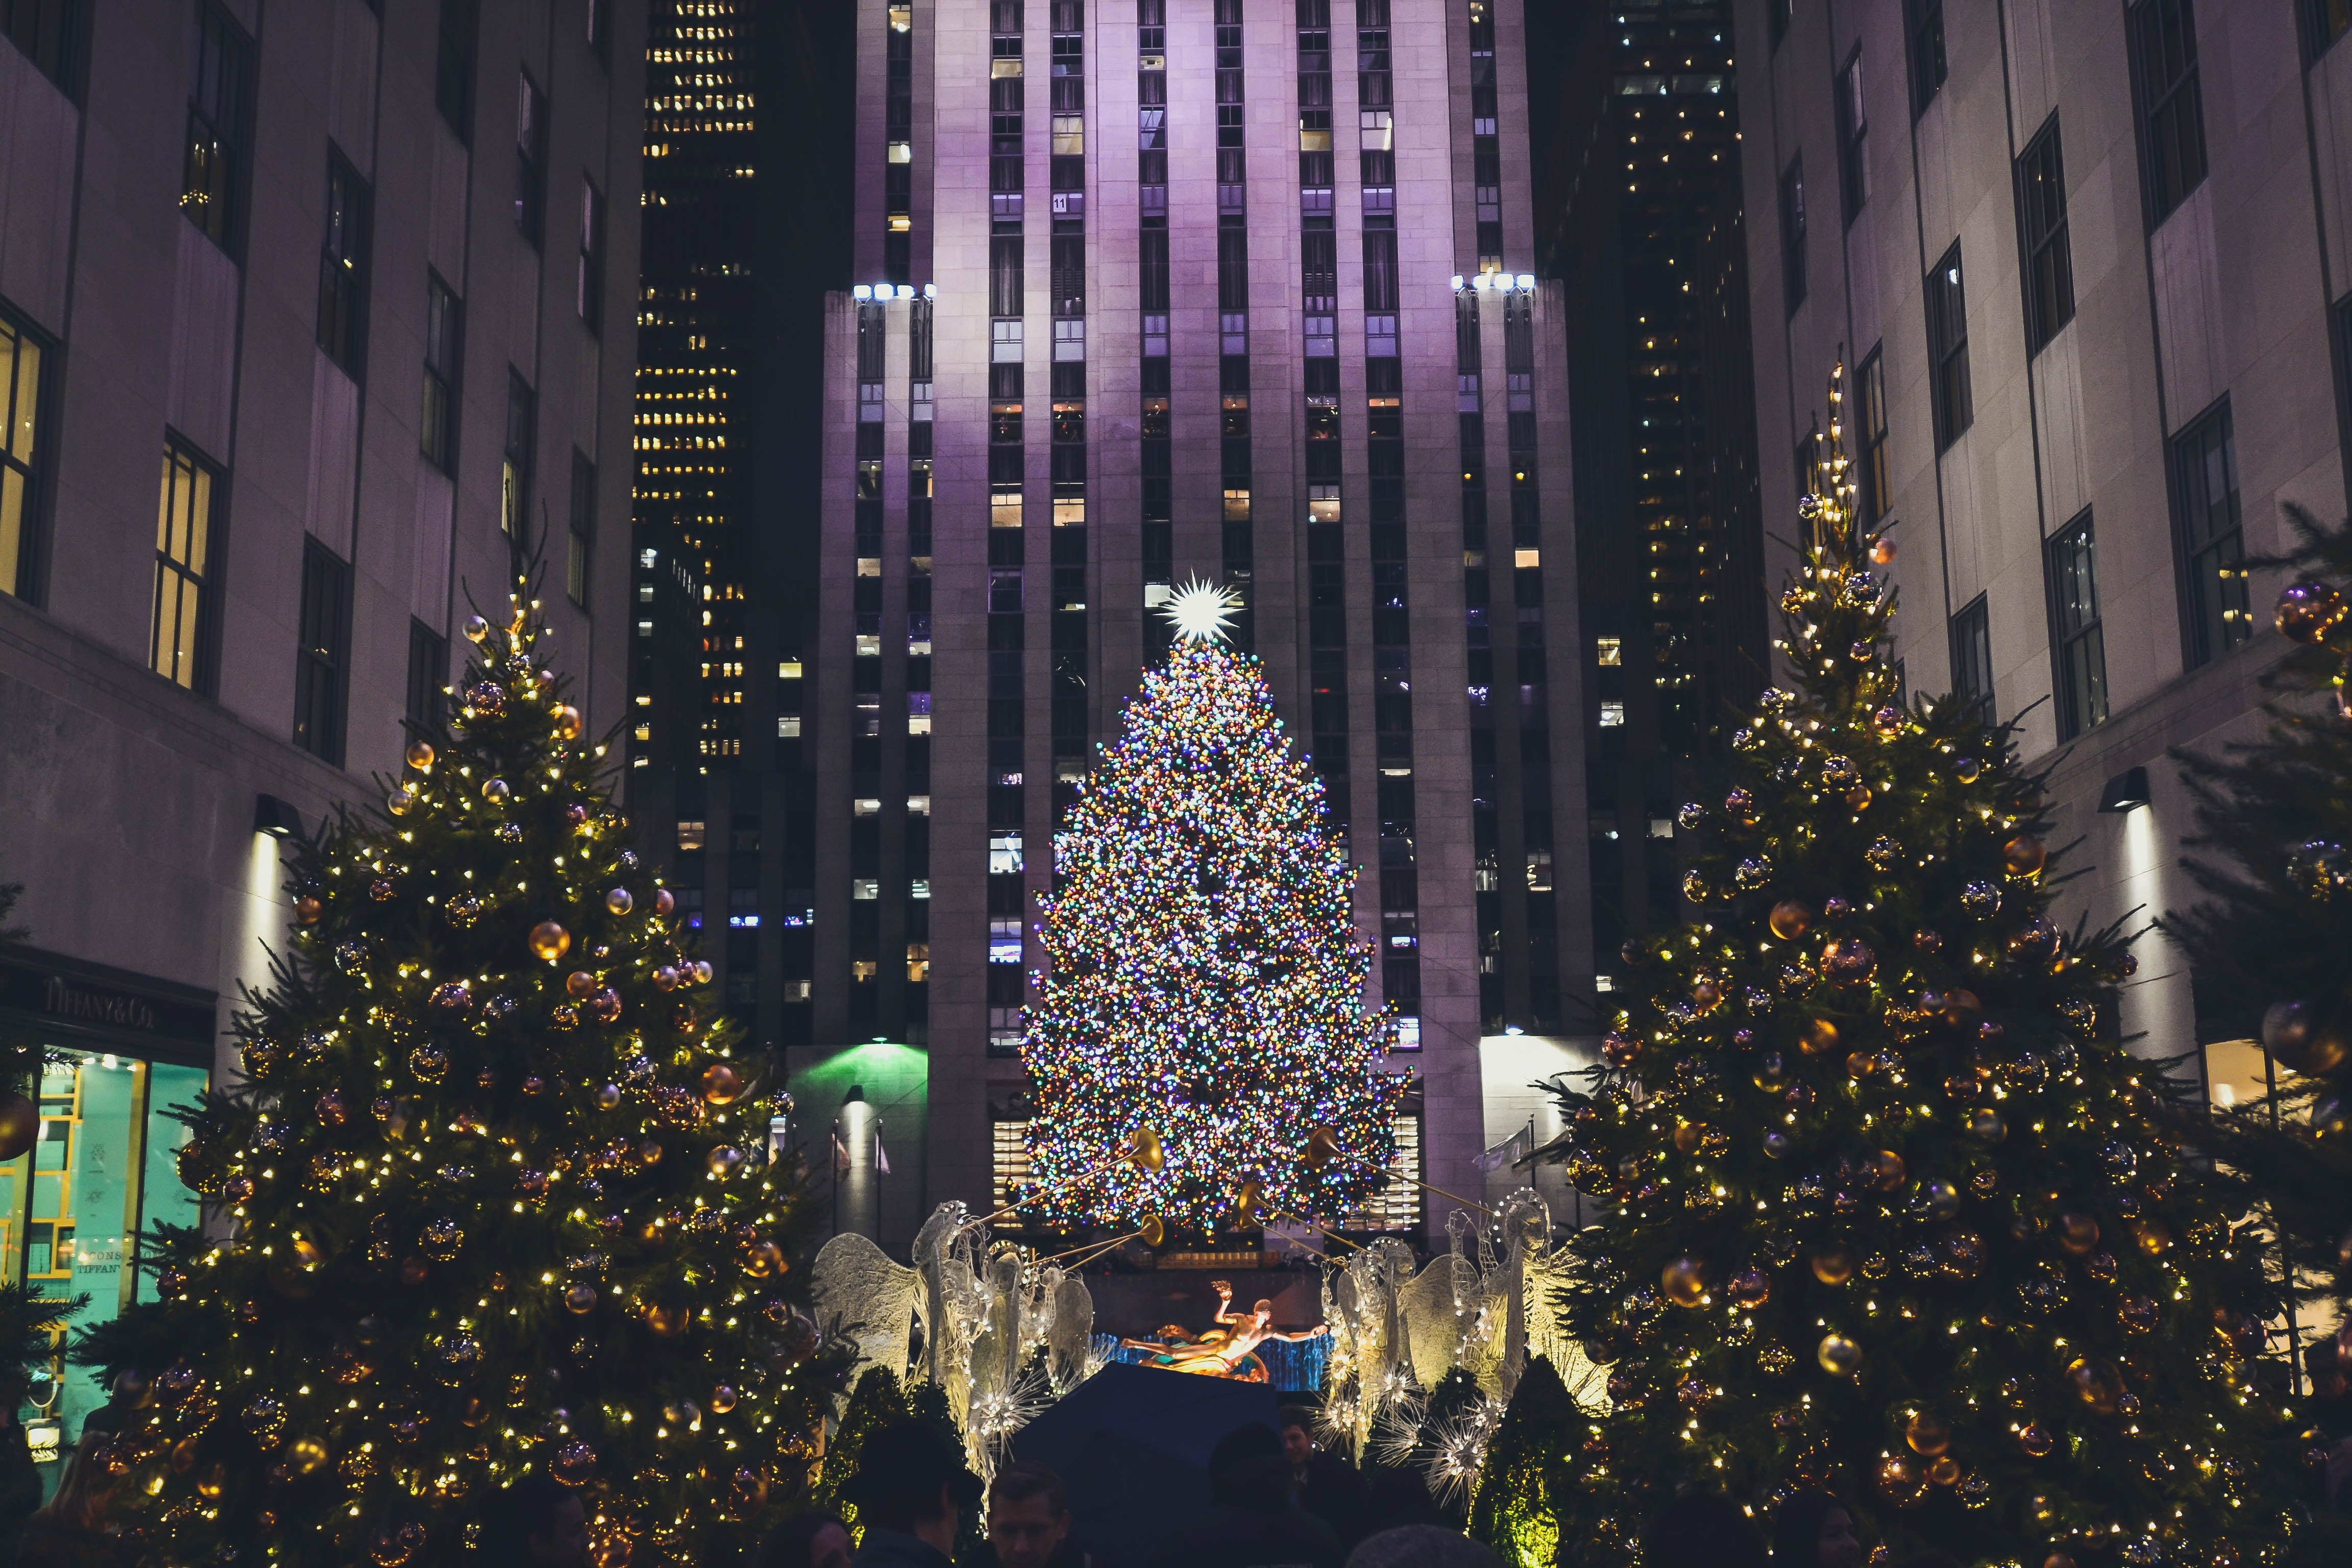 The Rockefeller Center pictured during a previous Christmas with their tree lit. | Source: Unsplash.